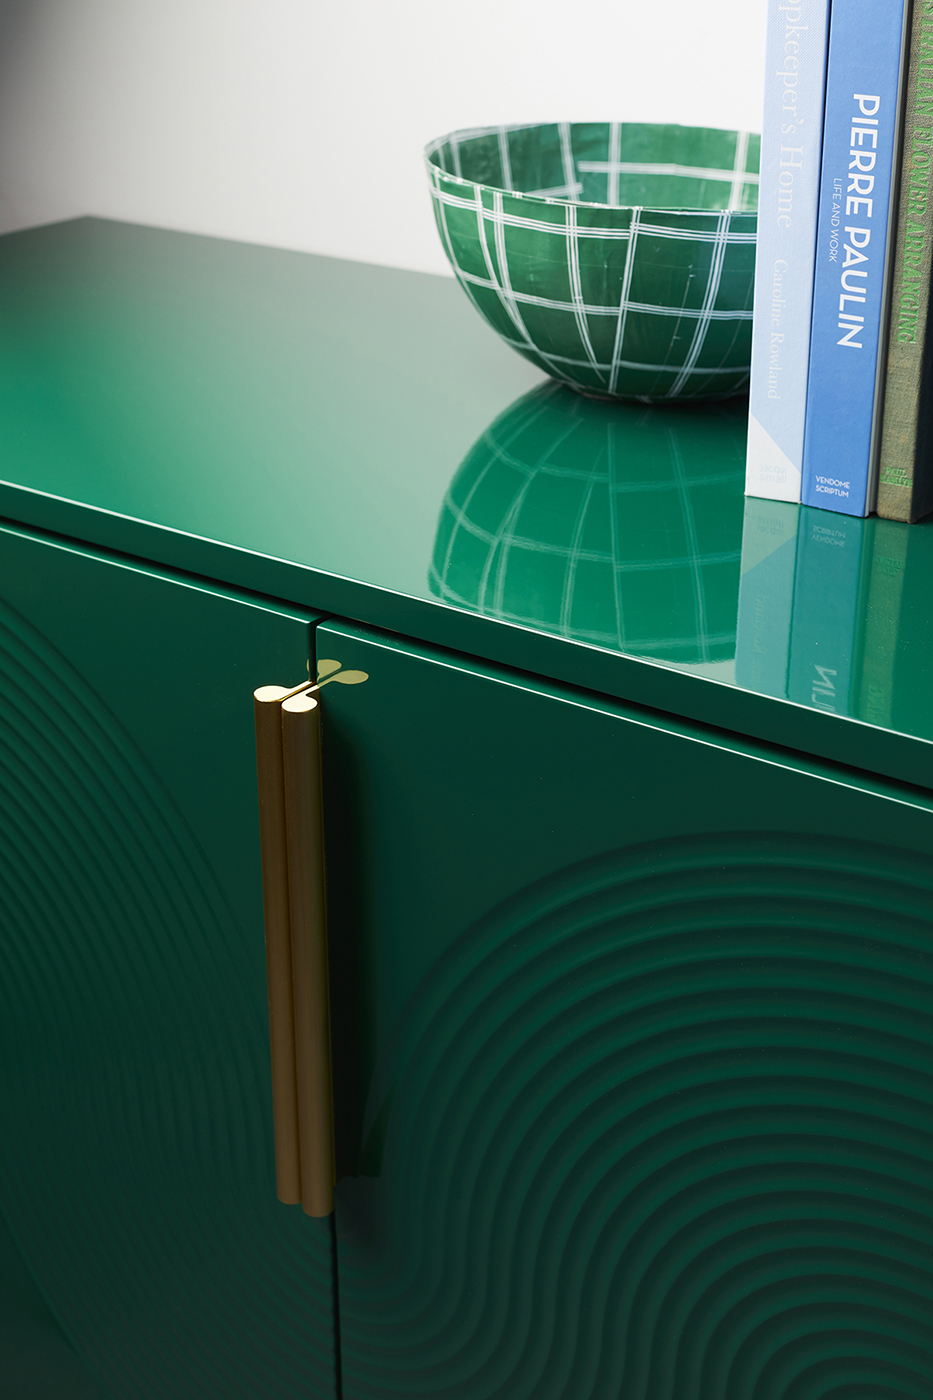 Bright green cabinet with arched details and gold hardware made by Ensemble furniture shot by Peter Tarasiuk